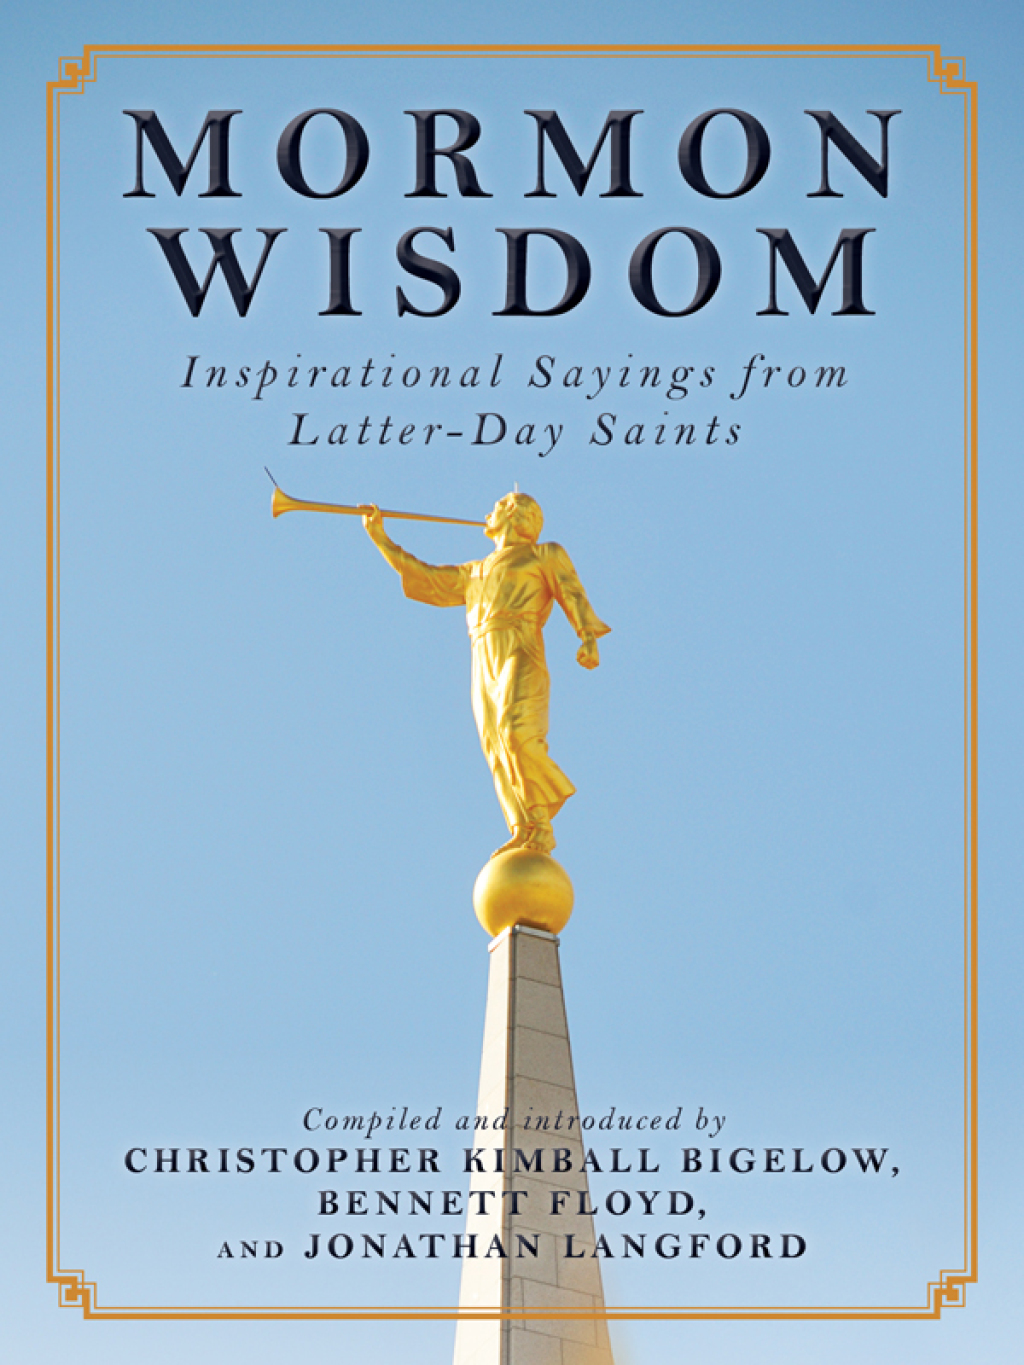 By Christopher Kimball Bigelow PRINTISBN: 9781632206350 E-TEXT ISBN: 9781632207913 Edition: 0